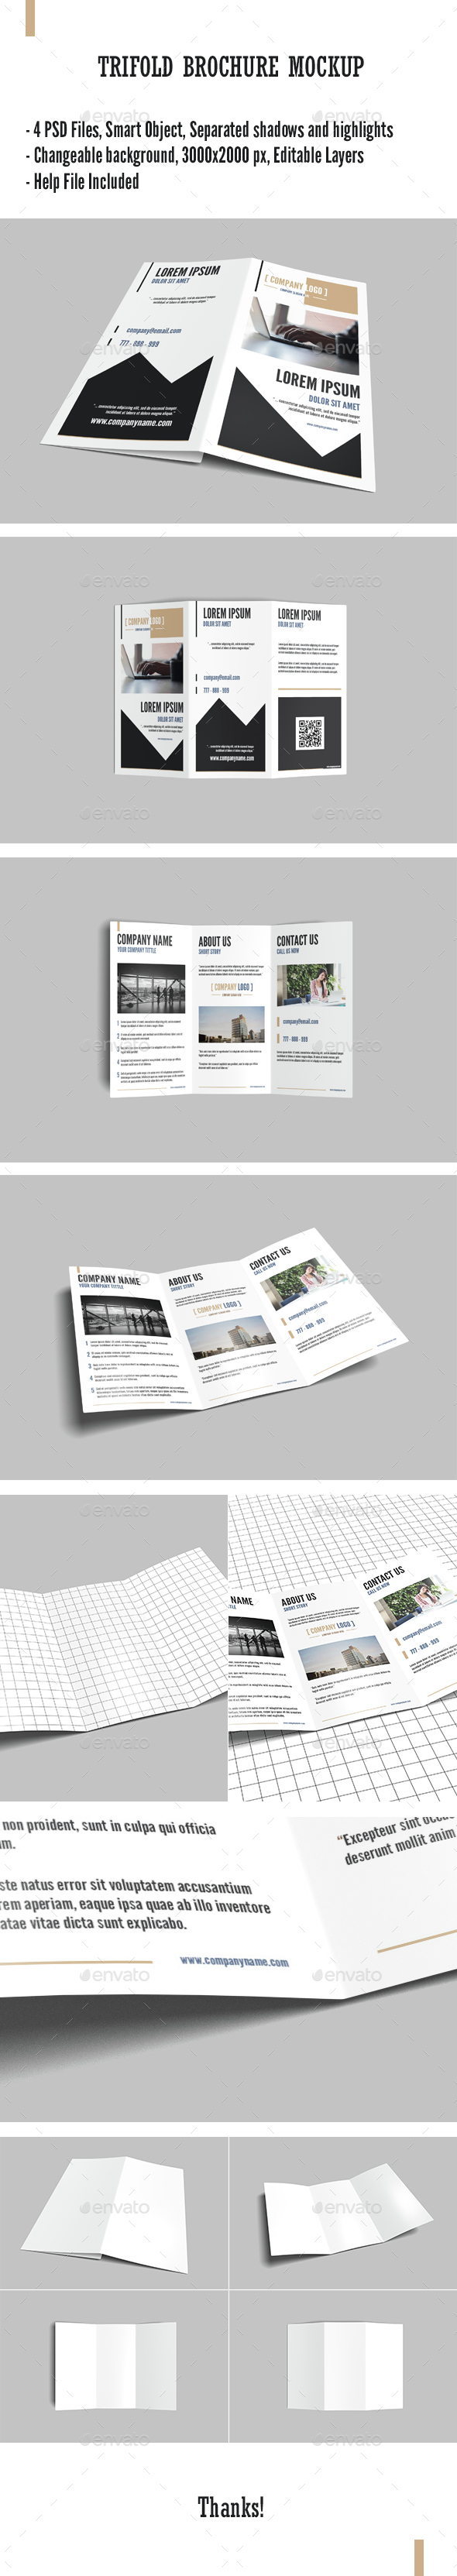 Trifold Brochure Mock-Up - Product Mock-Ups Graphics